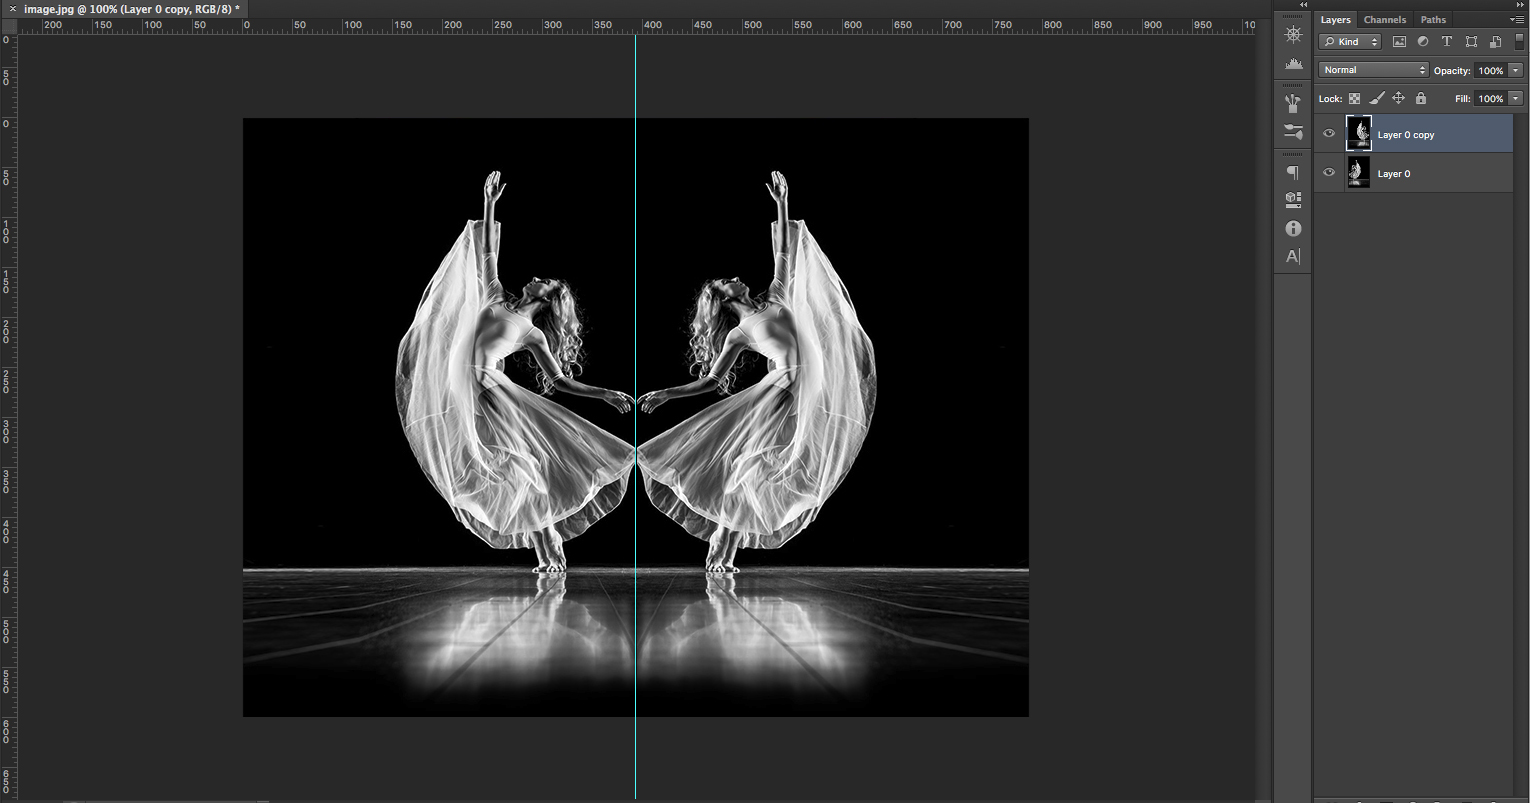 How to make a mirror image in Photoshop